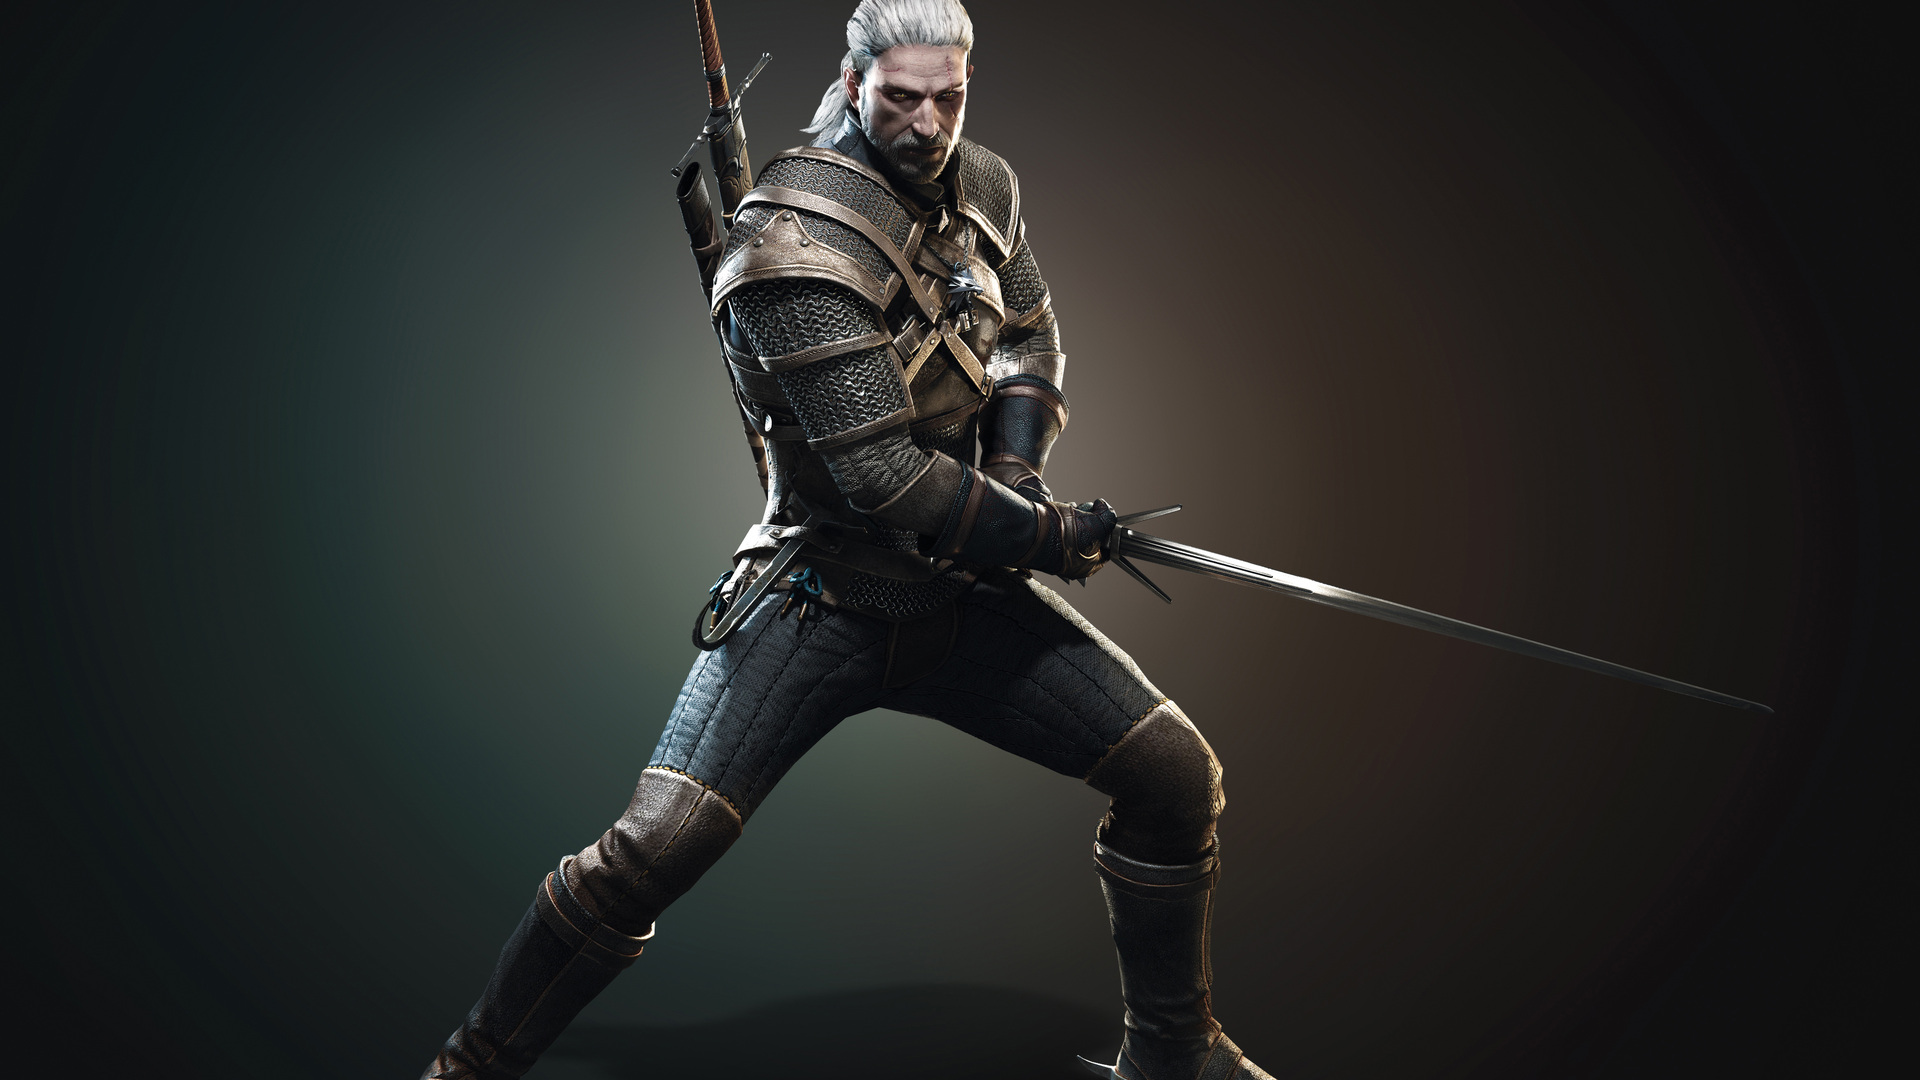 1920x1080 Geralt Of Rivia The Witcher 3 Wild Hunt 4k Laptop Full